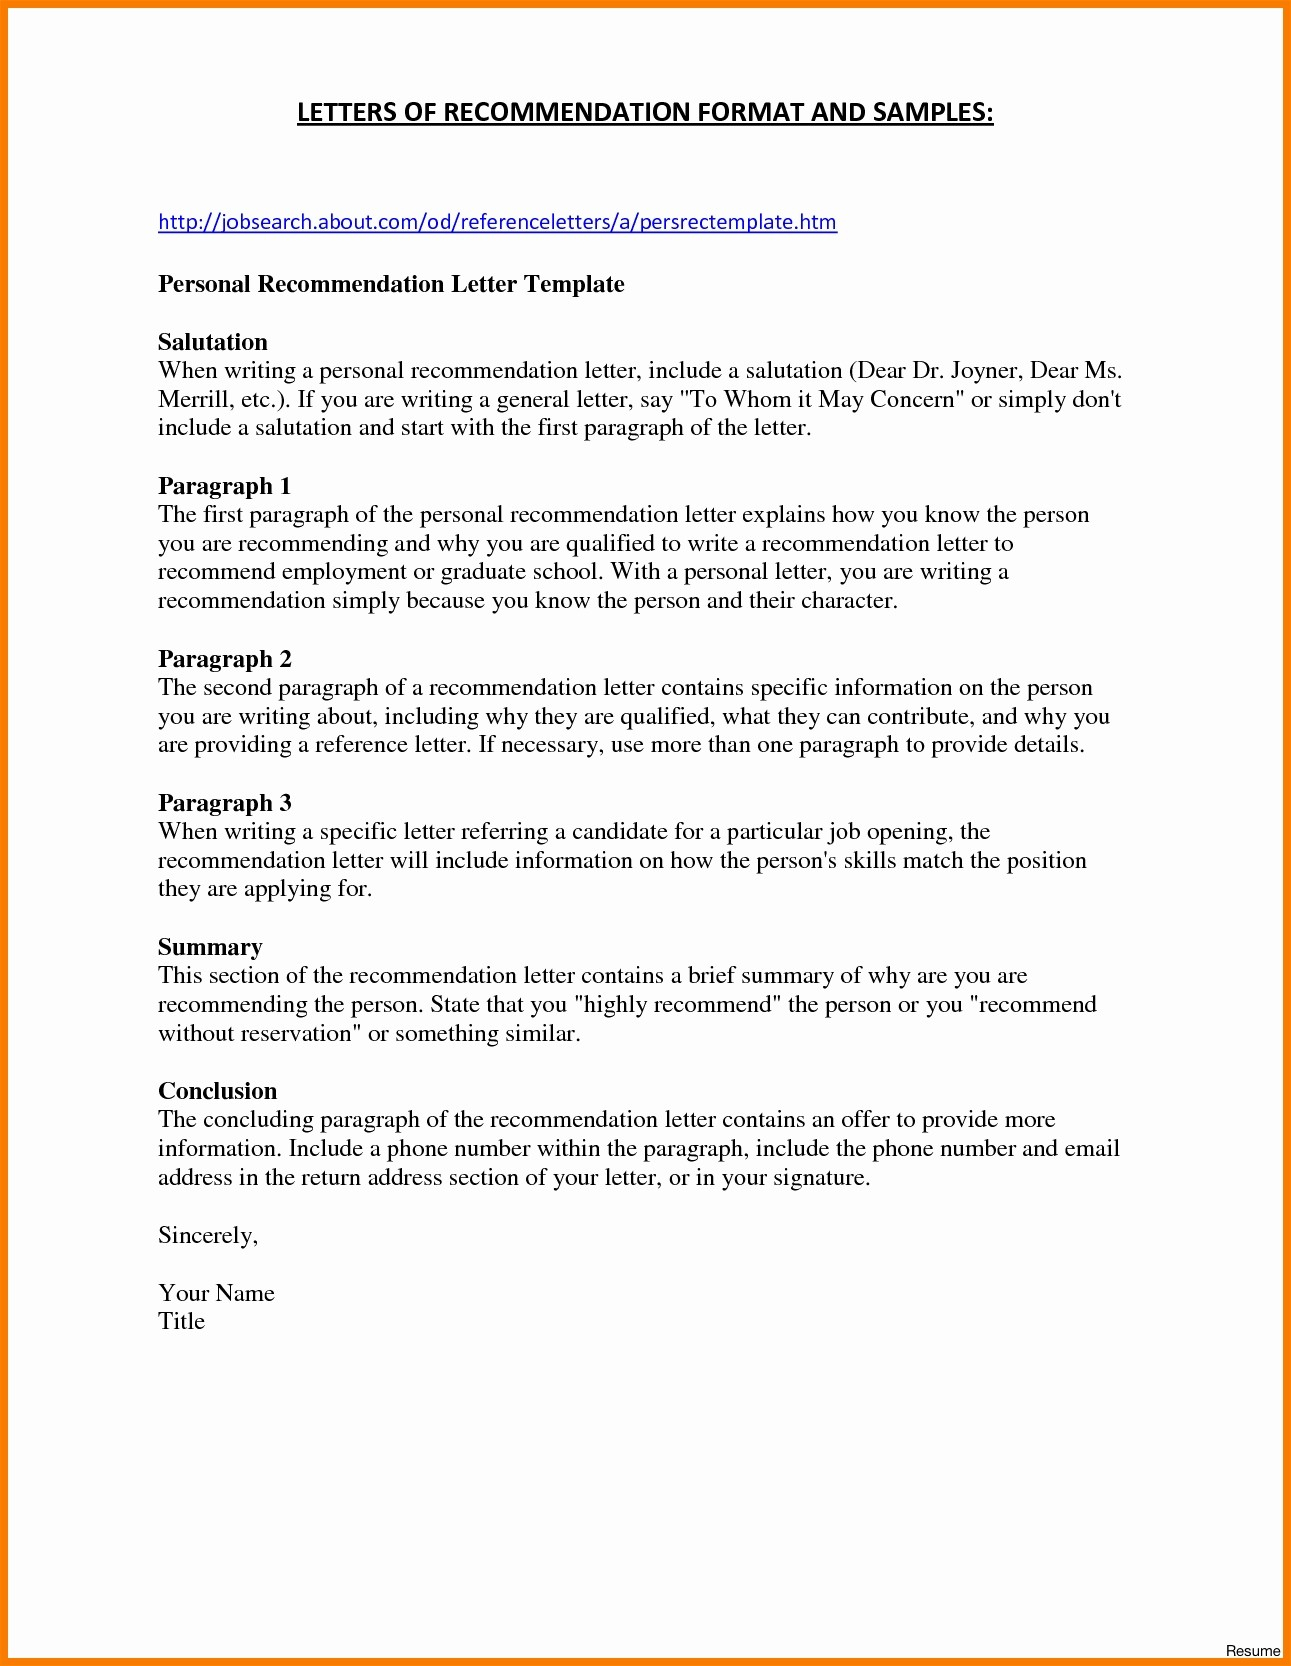 Proposal Letter Template - Writing A Proposal Letter for A Job Save Cover Letter for Bid